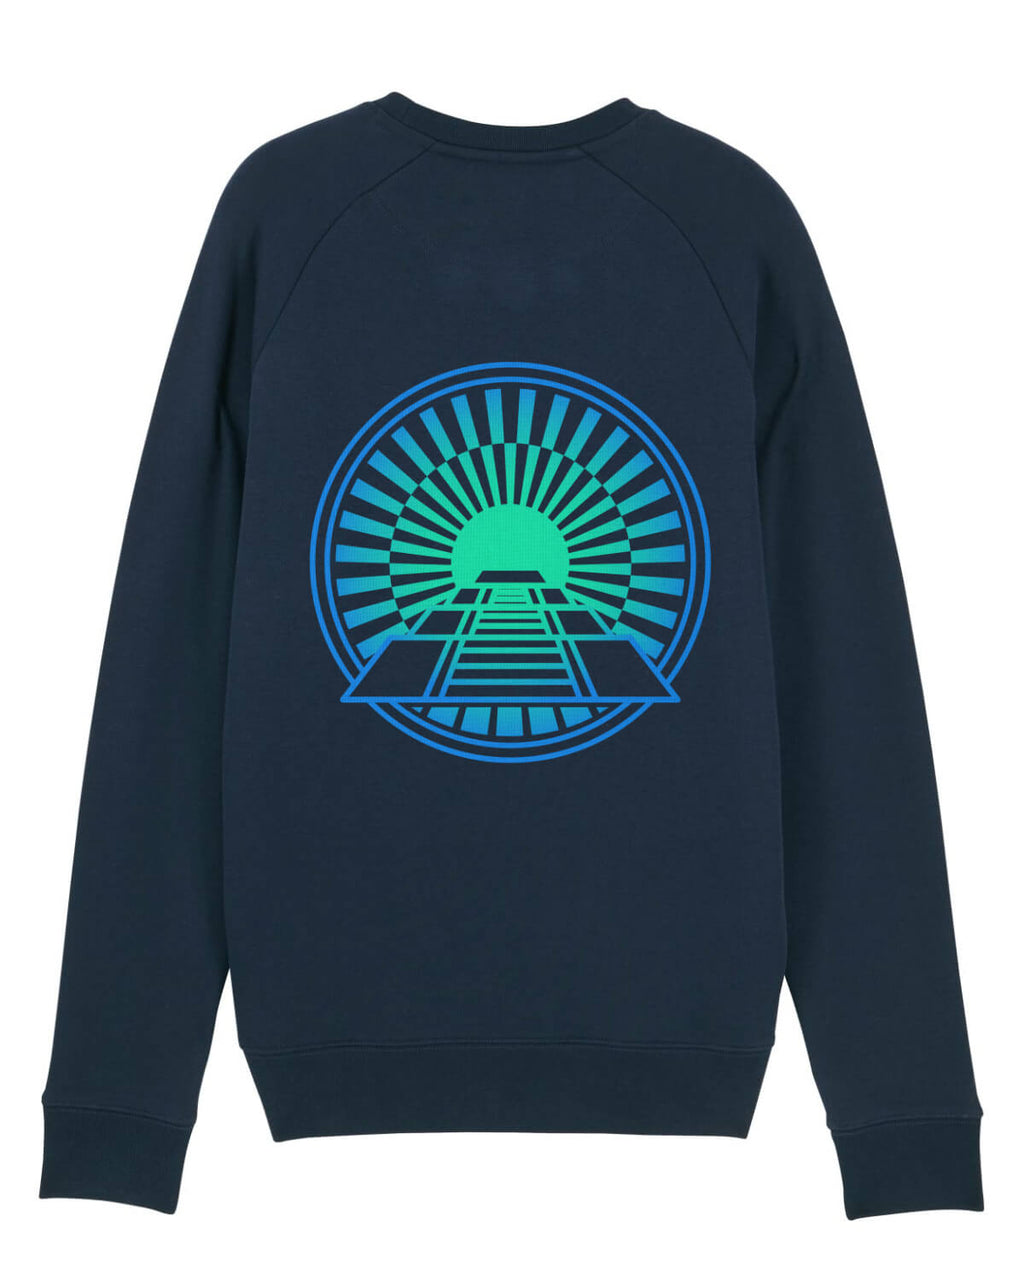 blue sweatshirt with green and blue pyramid print on the back